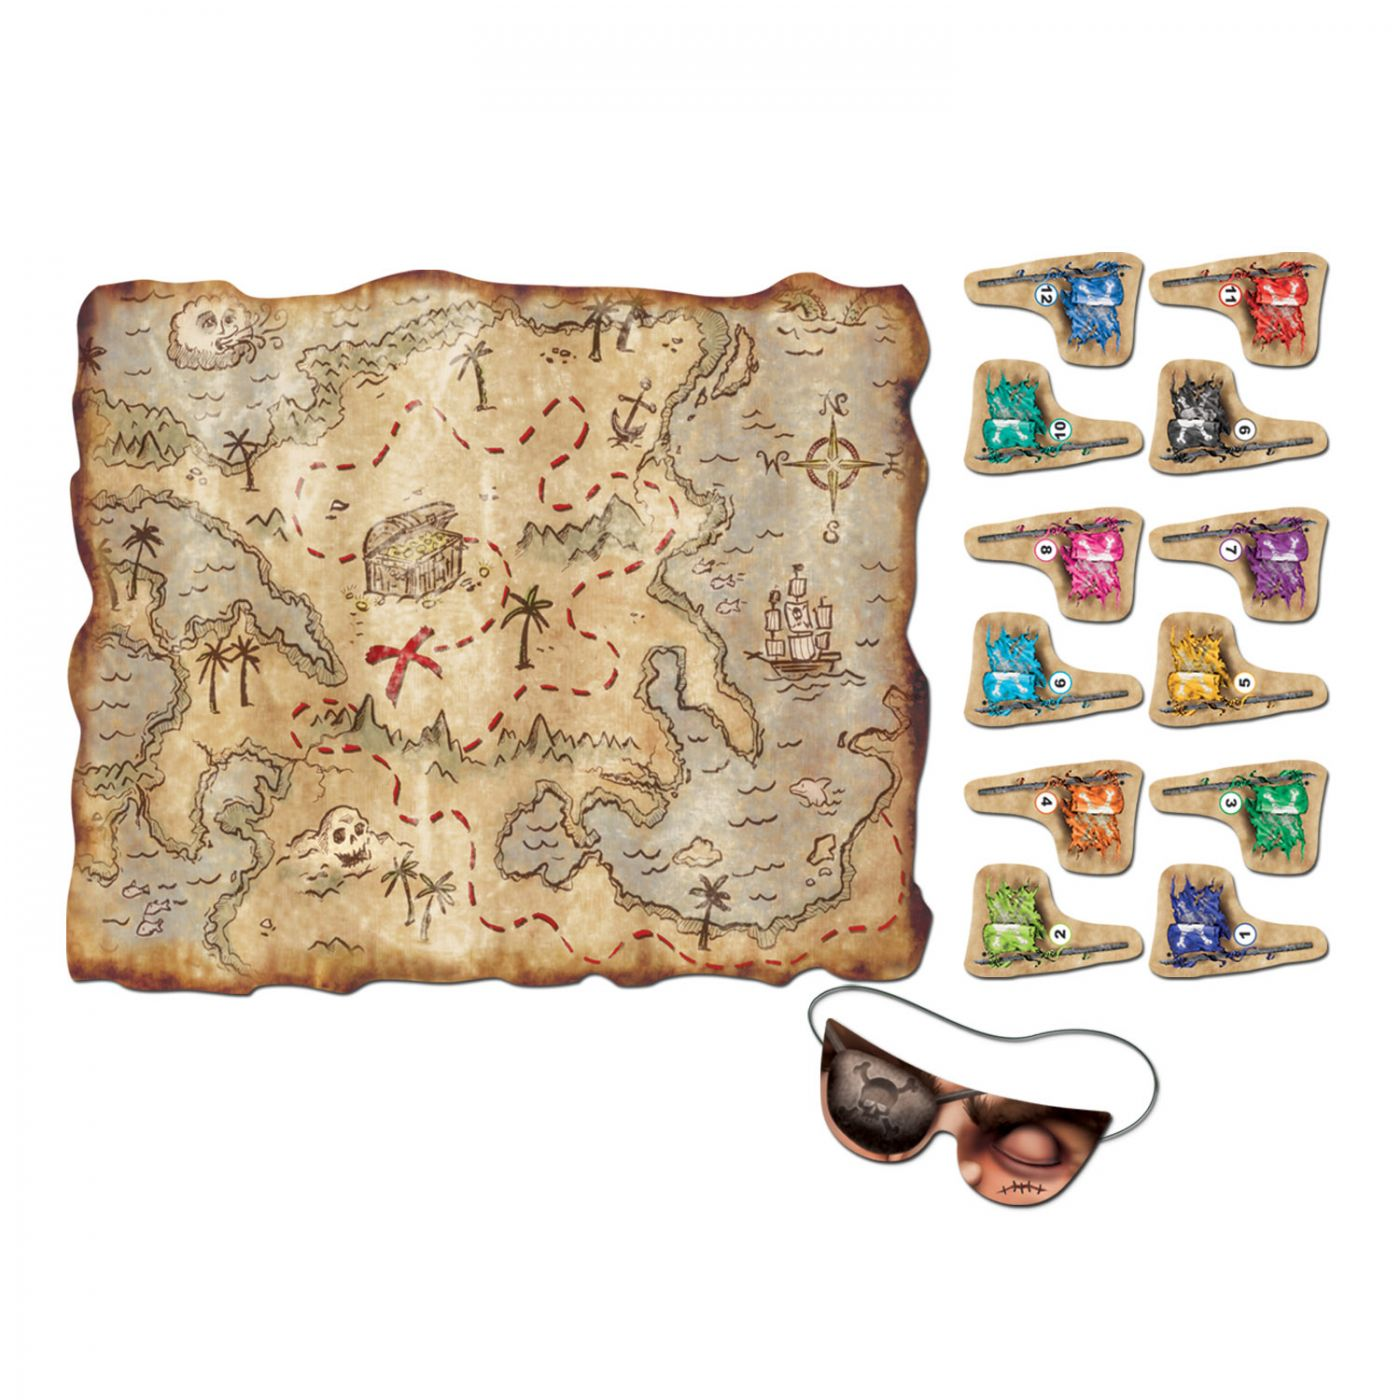 Pirate Treasure Map Party Game (24) image